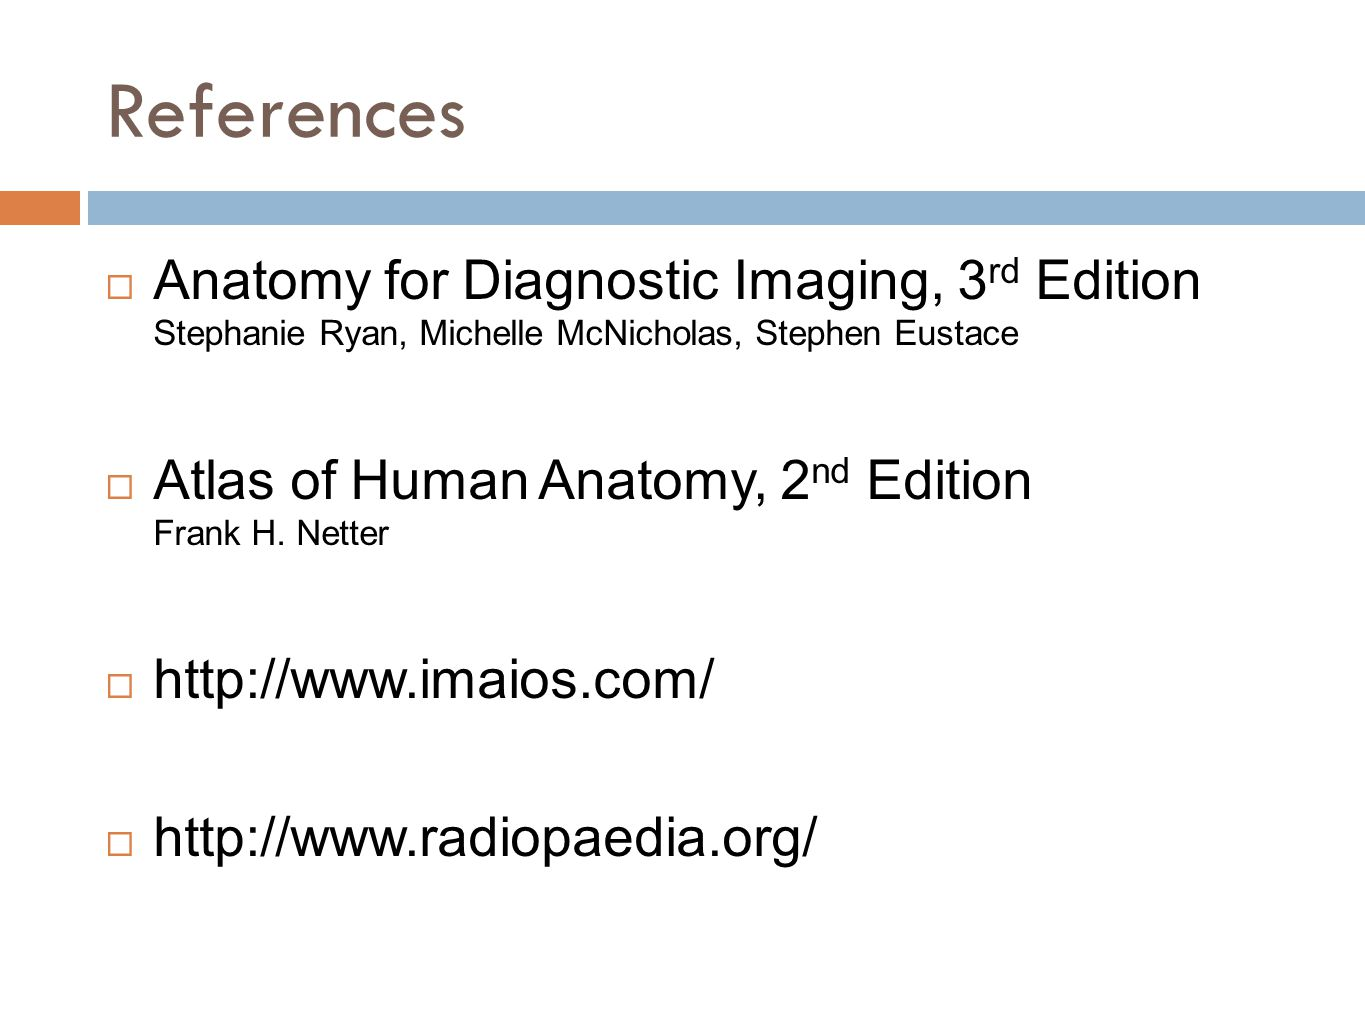 References Anatomy for Diagnostic Imaging, 3rd Edition Stephanie Ryan, Michelle McNicholas, Stephen Eustace.